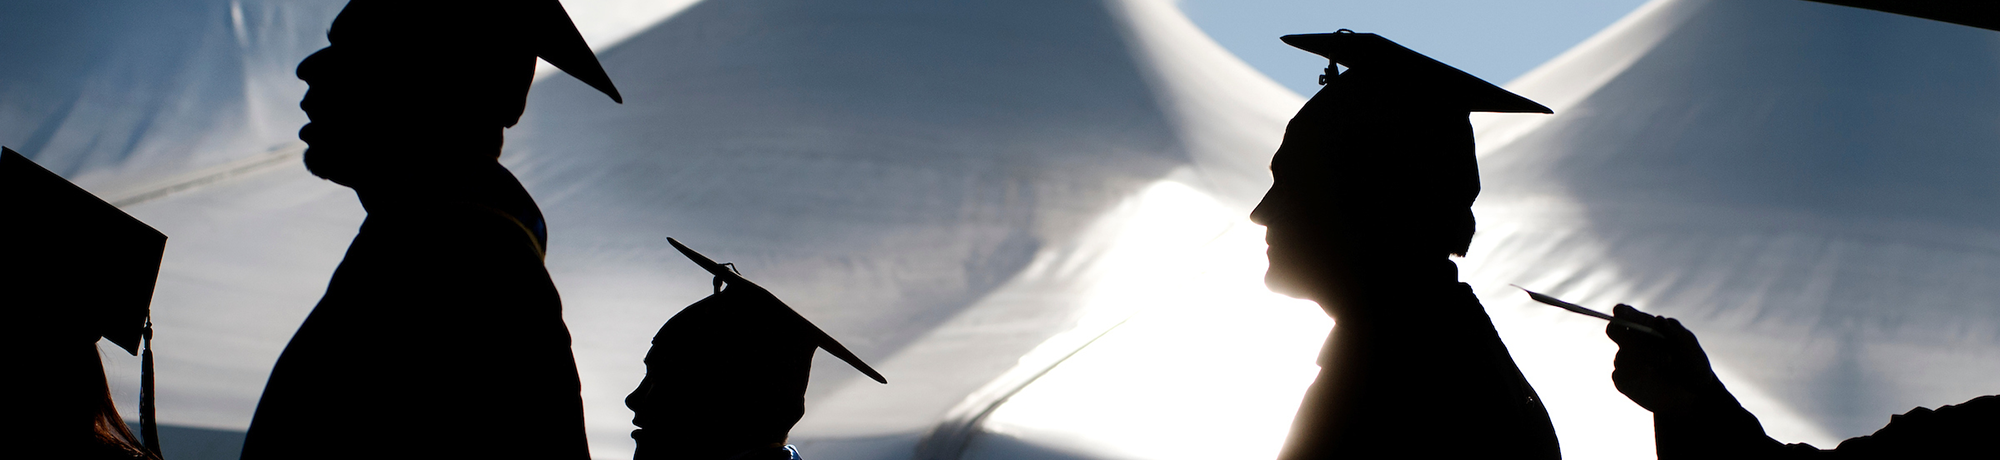 silhouette of faculty members in caps and gowns